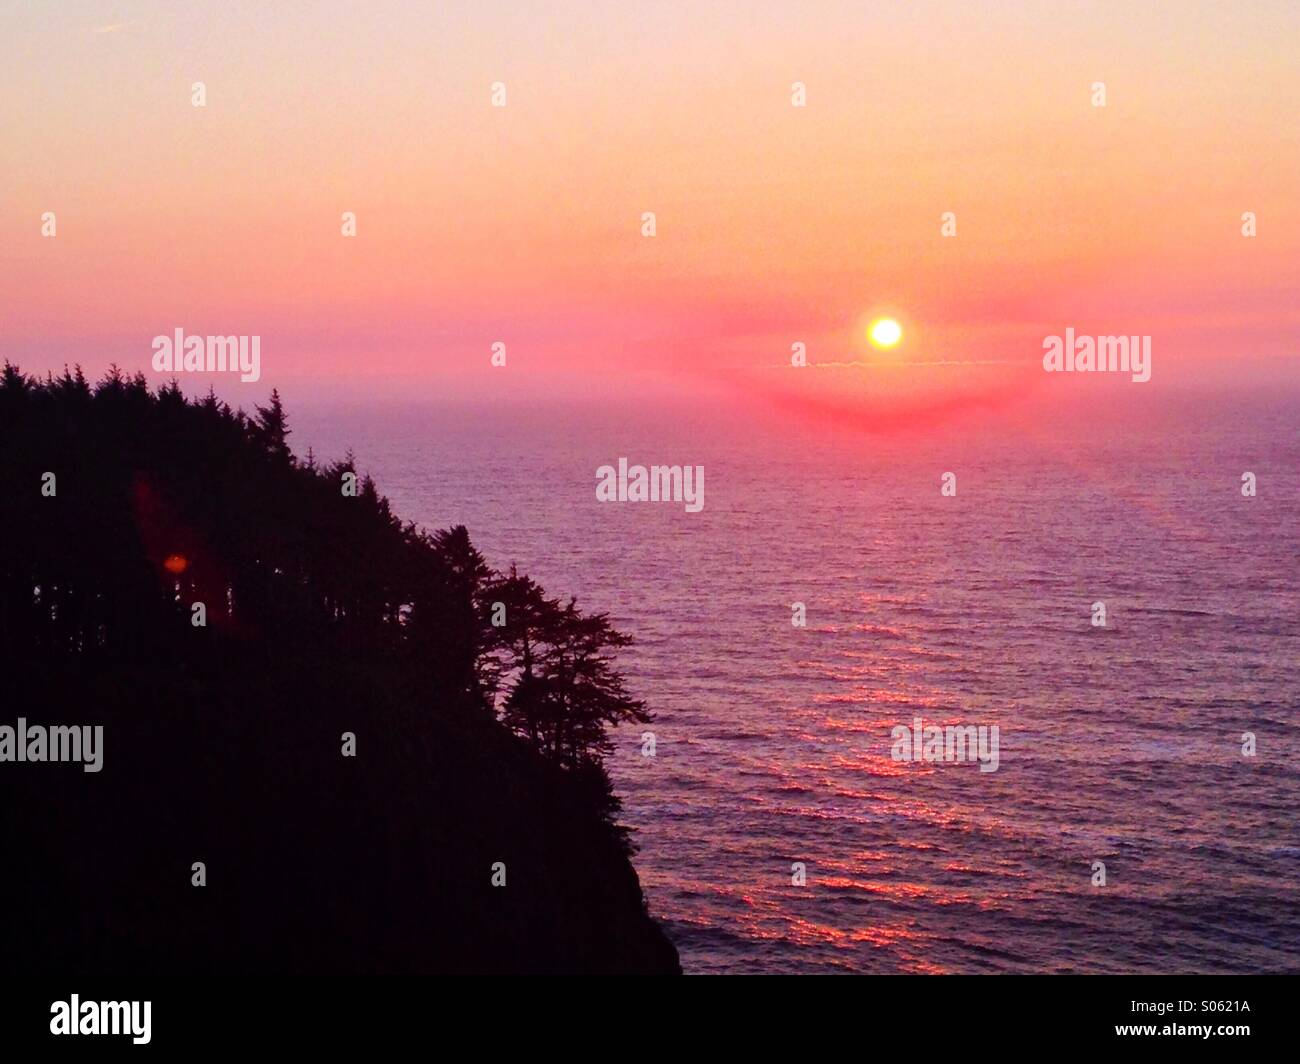 Sunset over the Pacific Ocean from Ebola Park overlook in Oregon. - Stock Image